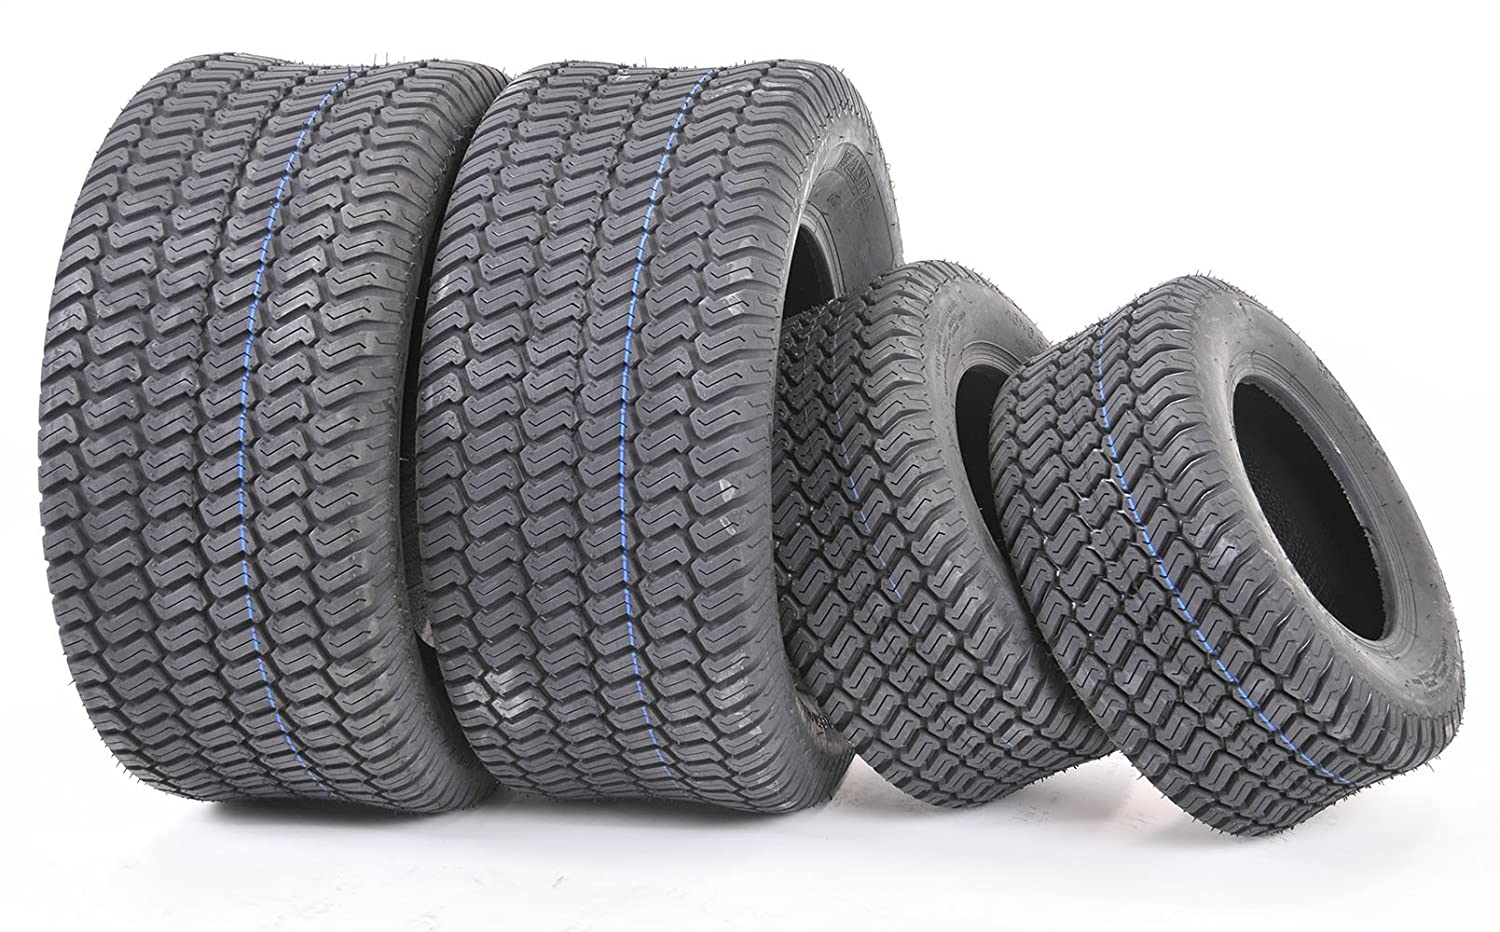 Wanda Set of 4 New Lawn Mower Turf Tires 15x6-6 Front & 20x10-8 Rear/4PR -13016/13040